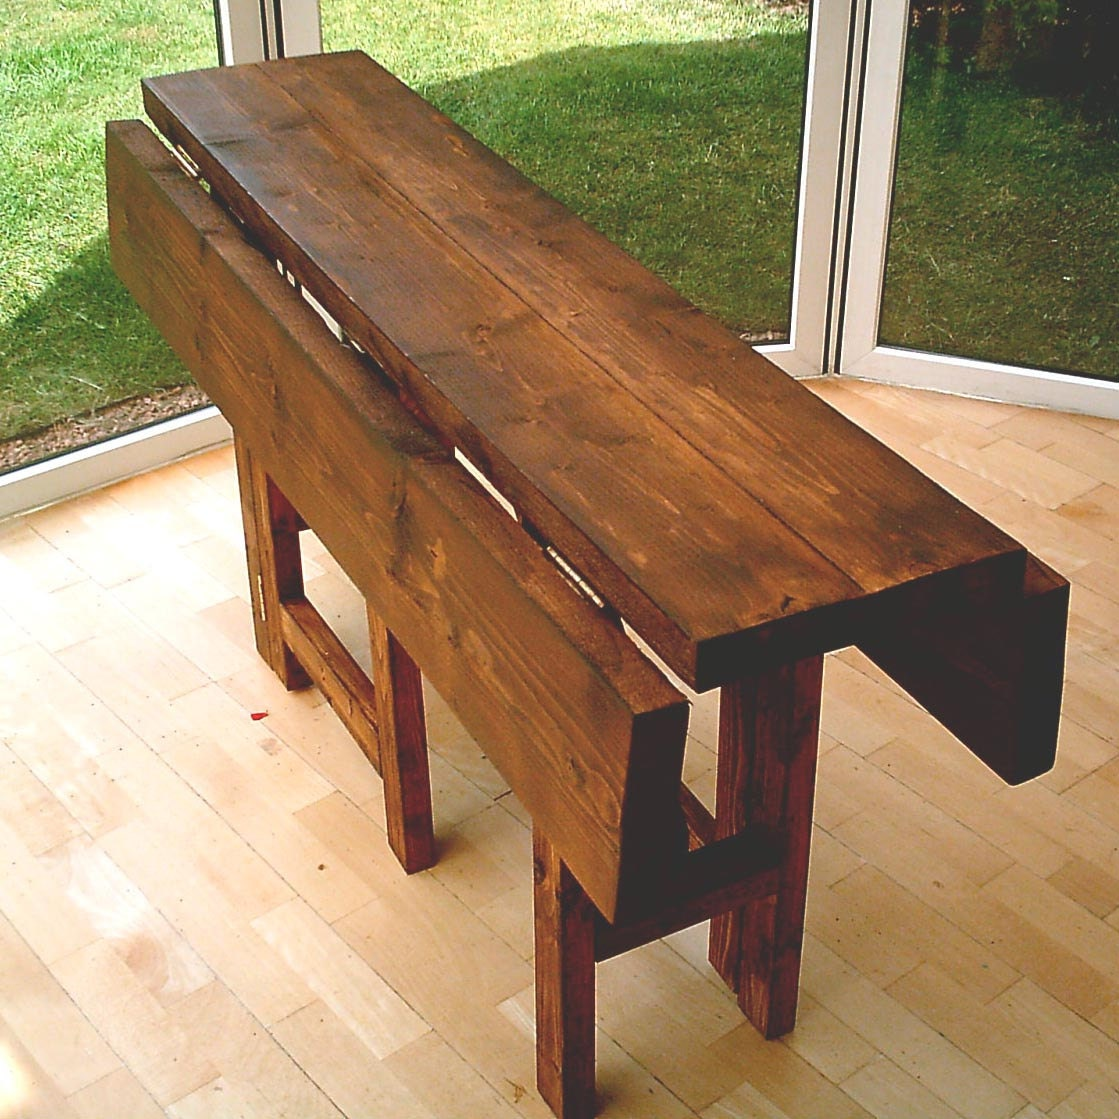 New Hand Made Rustic Drop Leaf Kitchen Dining Table In Thick